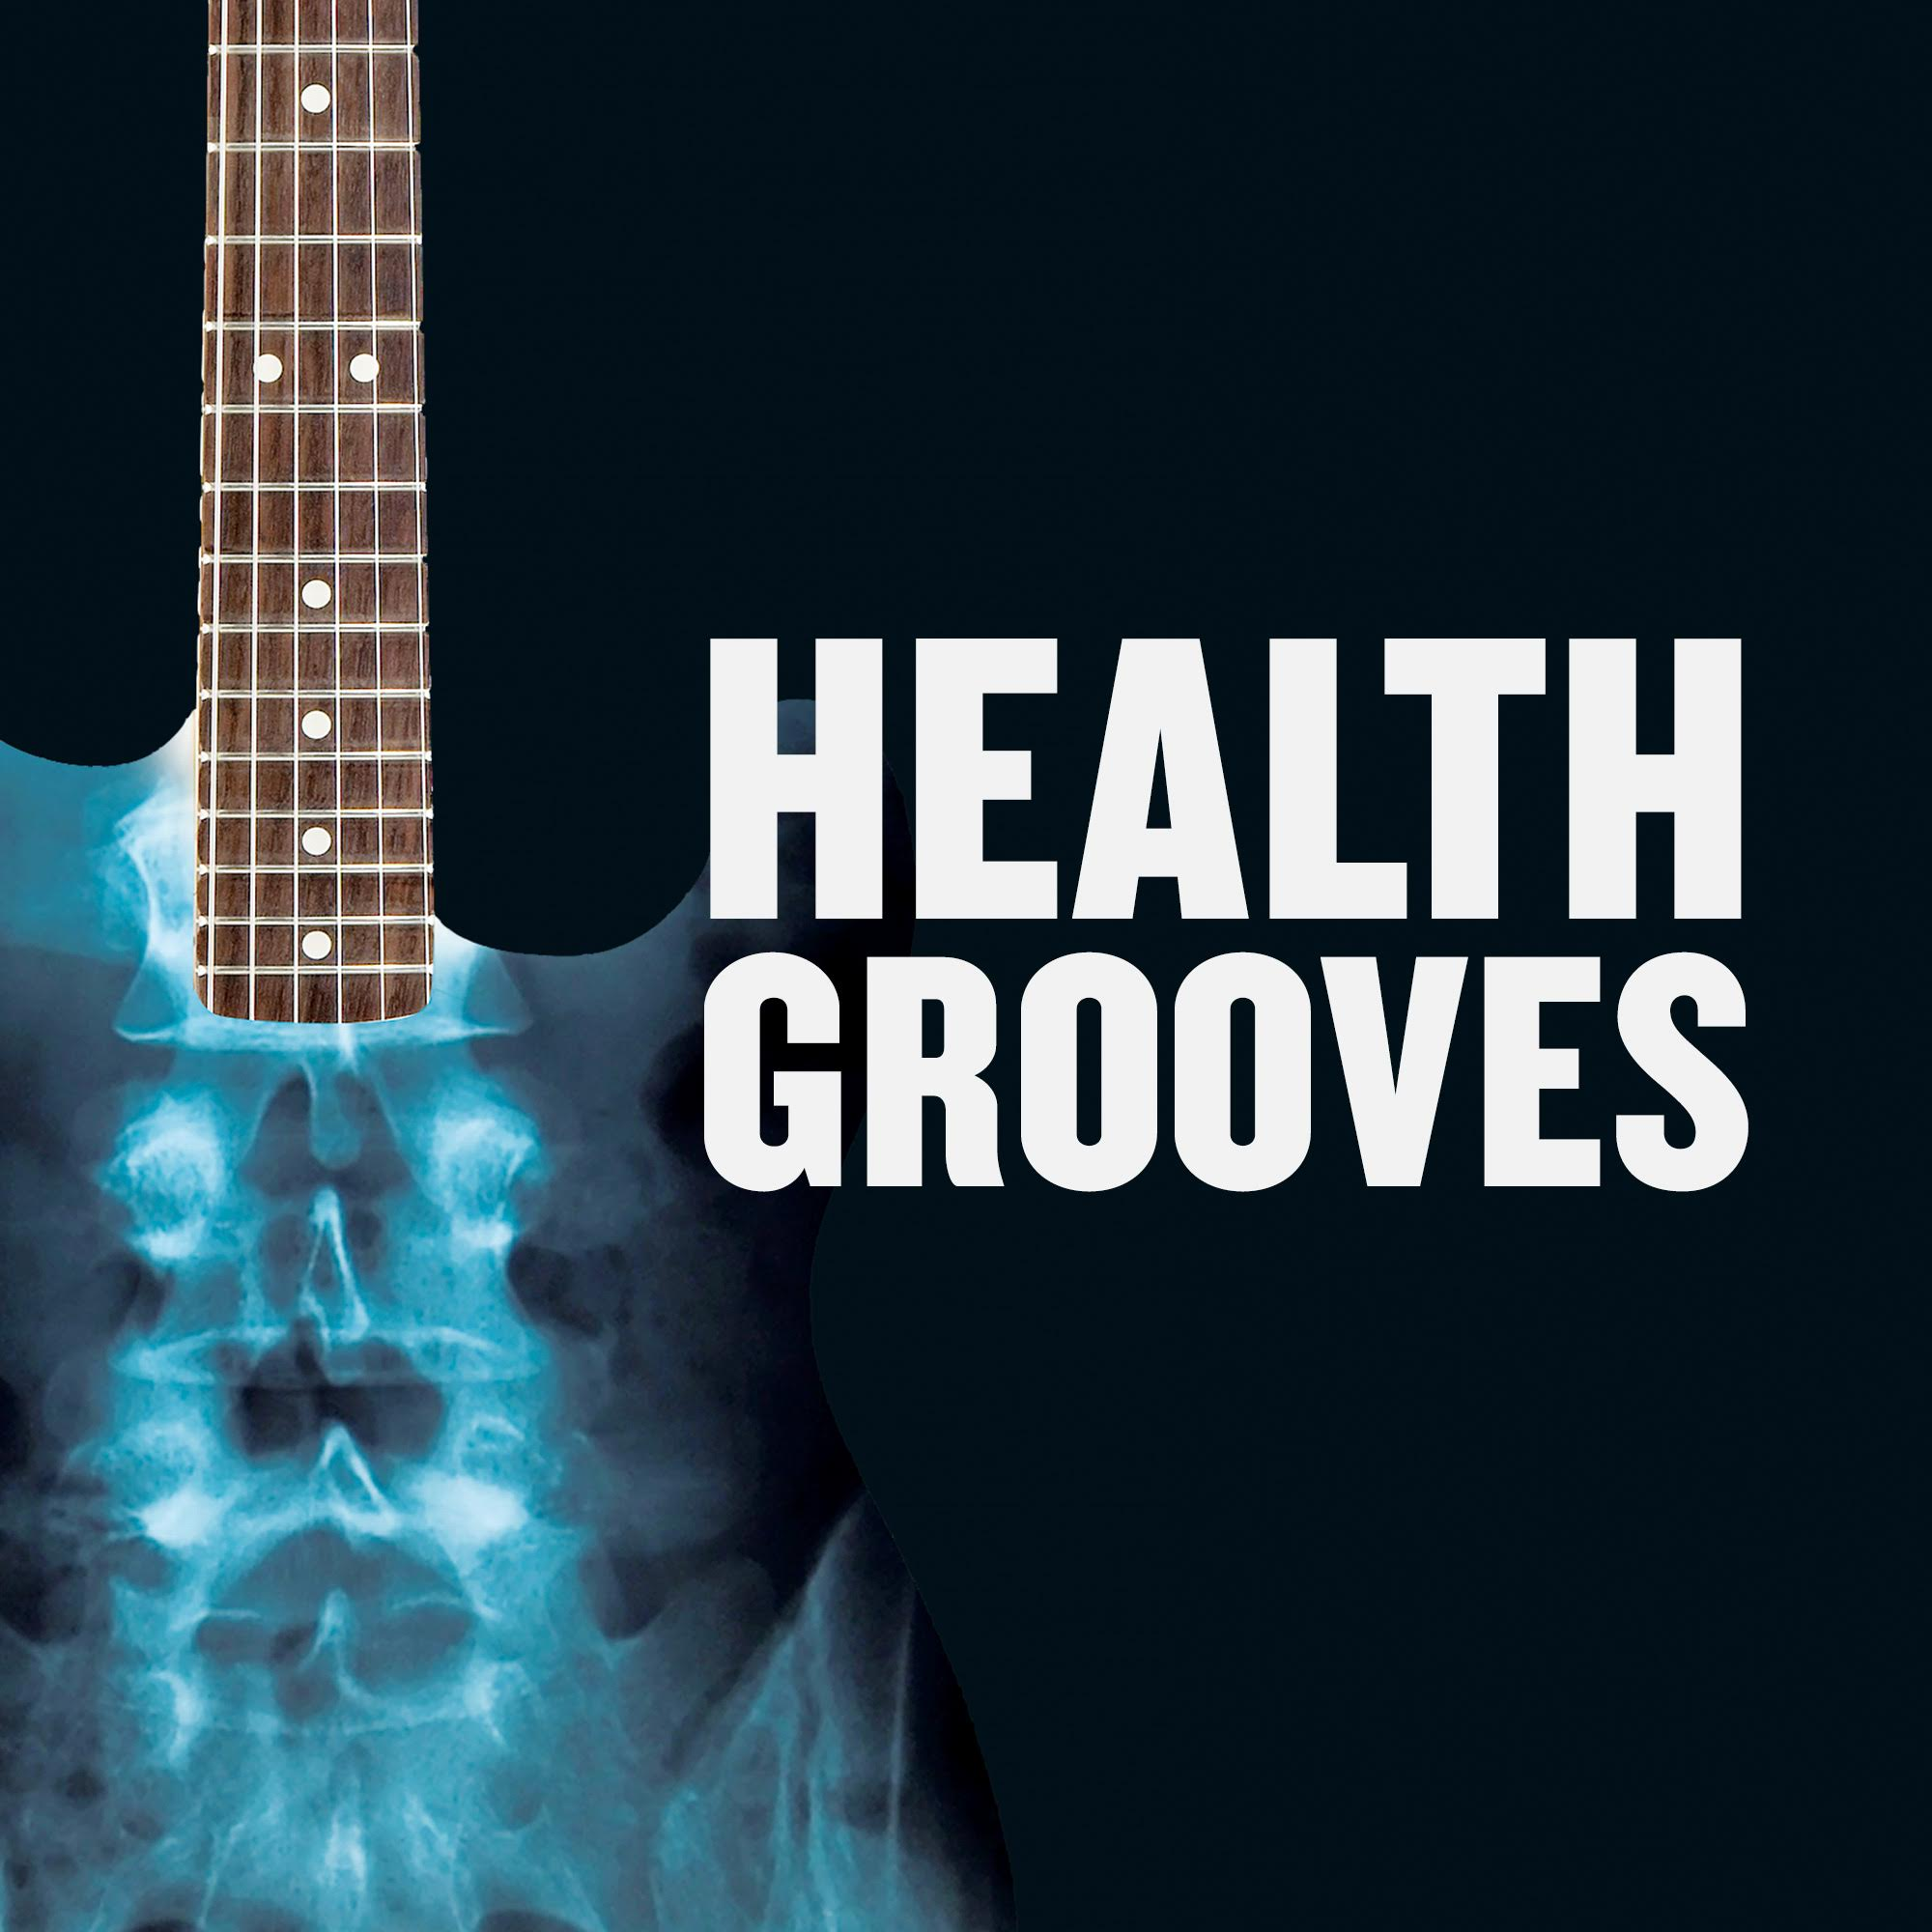 Health Grooves show art